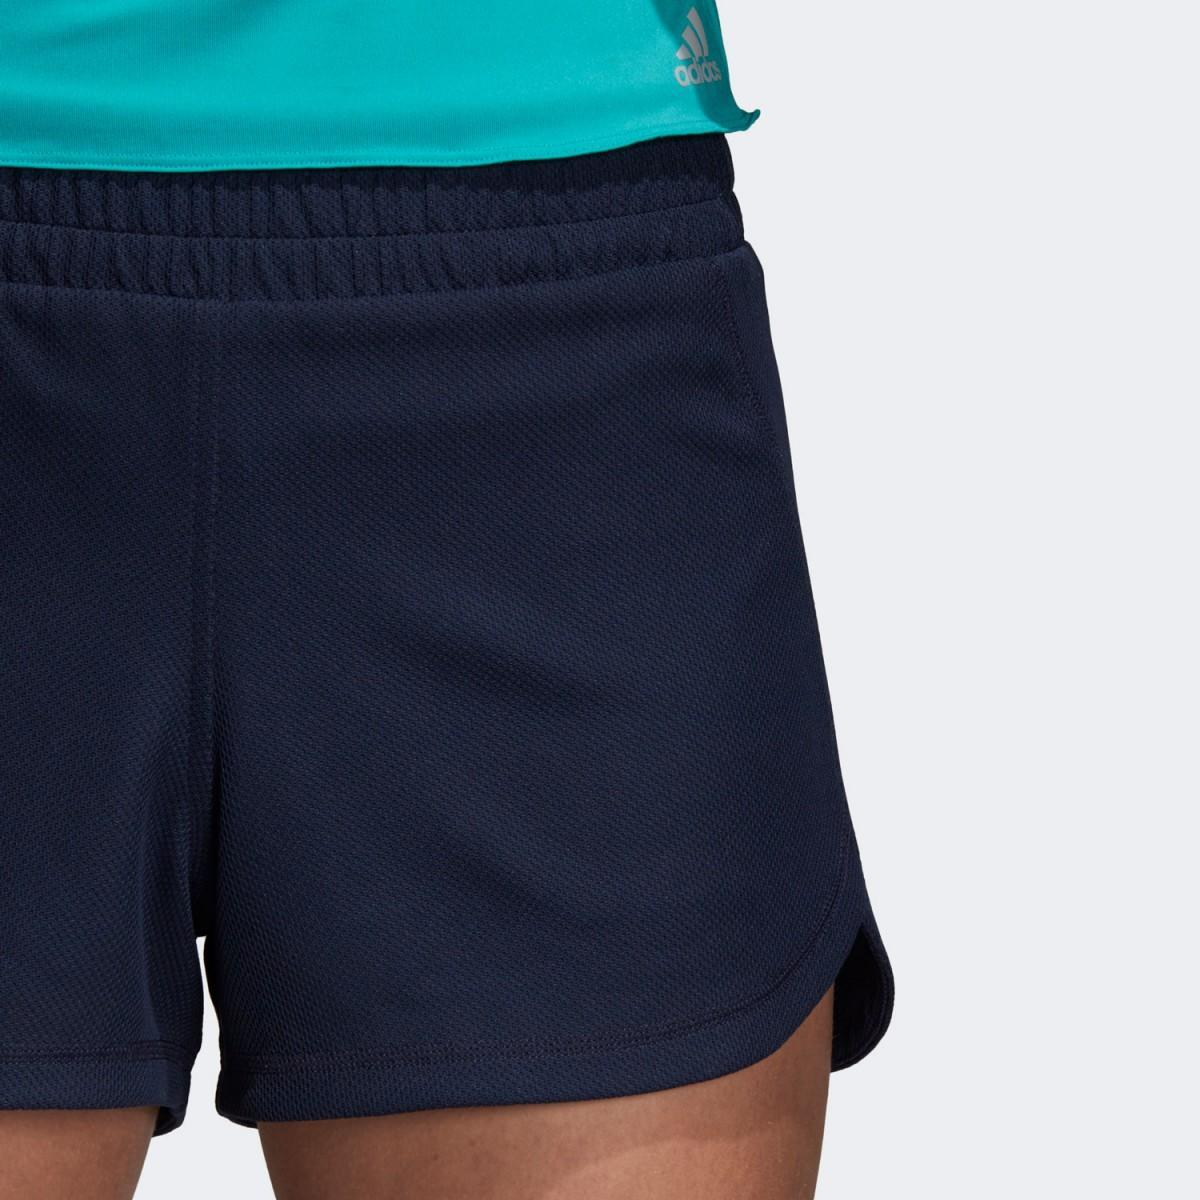 68f620aa302c10 Тенісні шорти жіночі Adidas Seasonal Short legend ink | TennisMaster